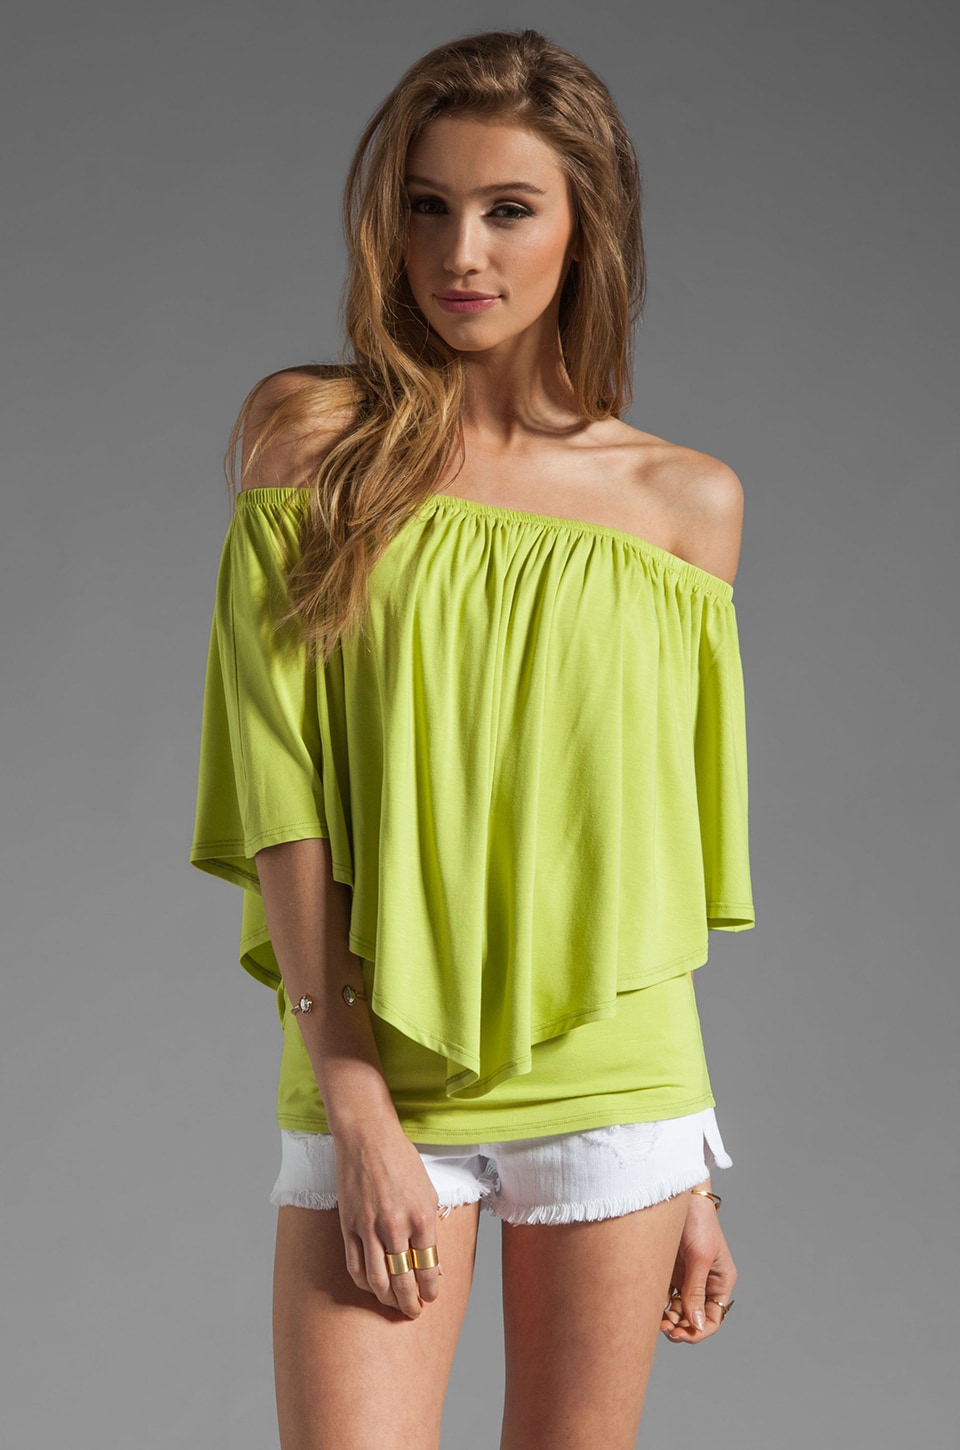 James & Joy Mina Convertible Top in Lime